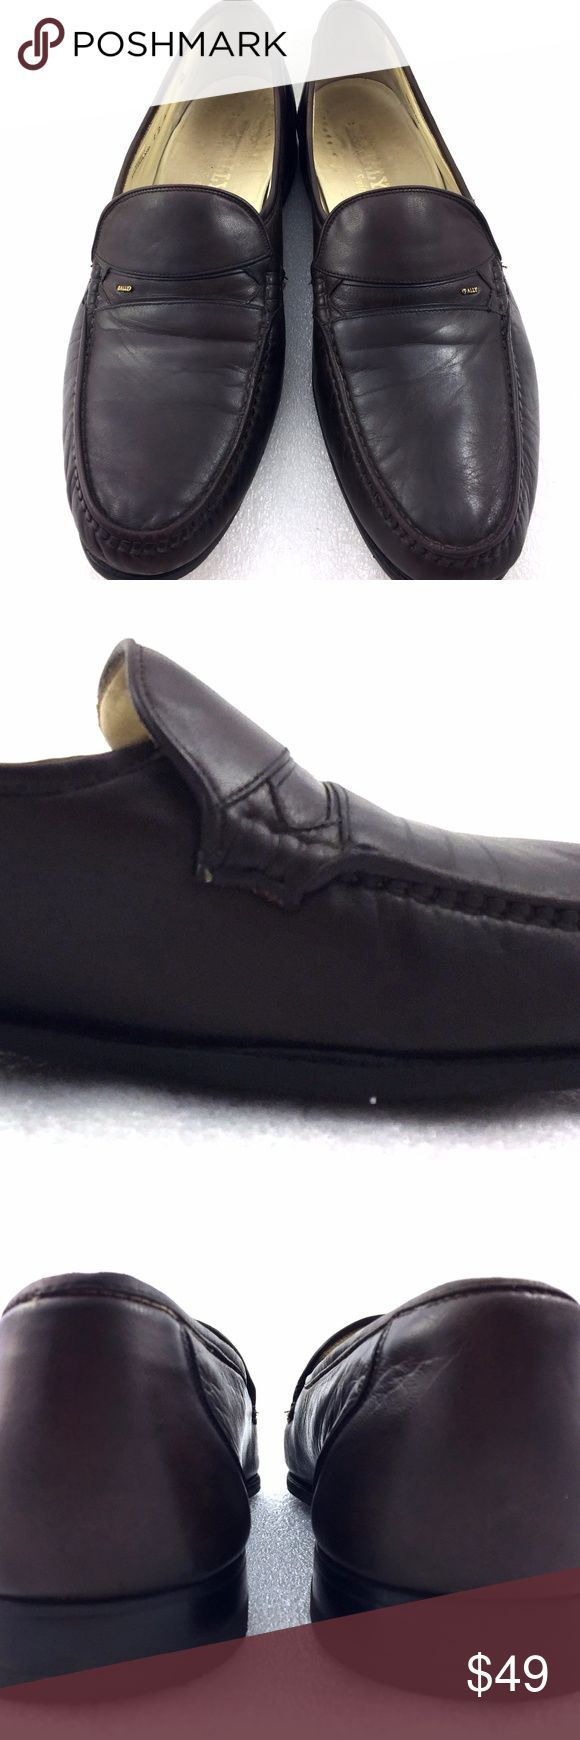 "Bally Leather Loafers 12D Mens Shoe Parawet Line For sale is a pair of loafers from Bally. The leather is very soft and supple. The right shoe has a scuff on the right side of shoe. The left shoe has a gap between the shoe in the sole and upper leather shown in the second picture. There are creases on the toes and vamp. These are vintage and there are wear on the insoles. The bottom soles has rubber sole protection attached.   Size: 12D Length: 12.25"" from back of heel to front of toe…"